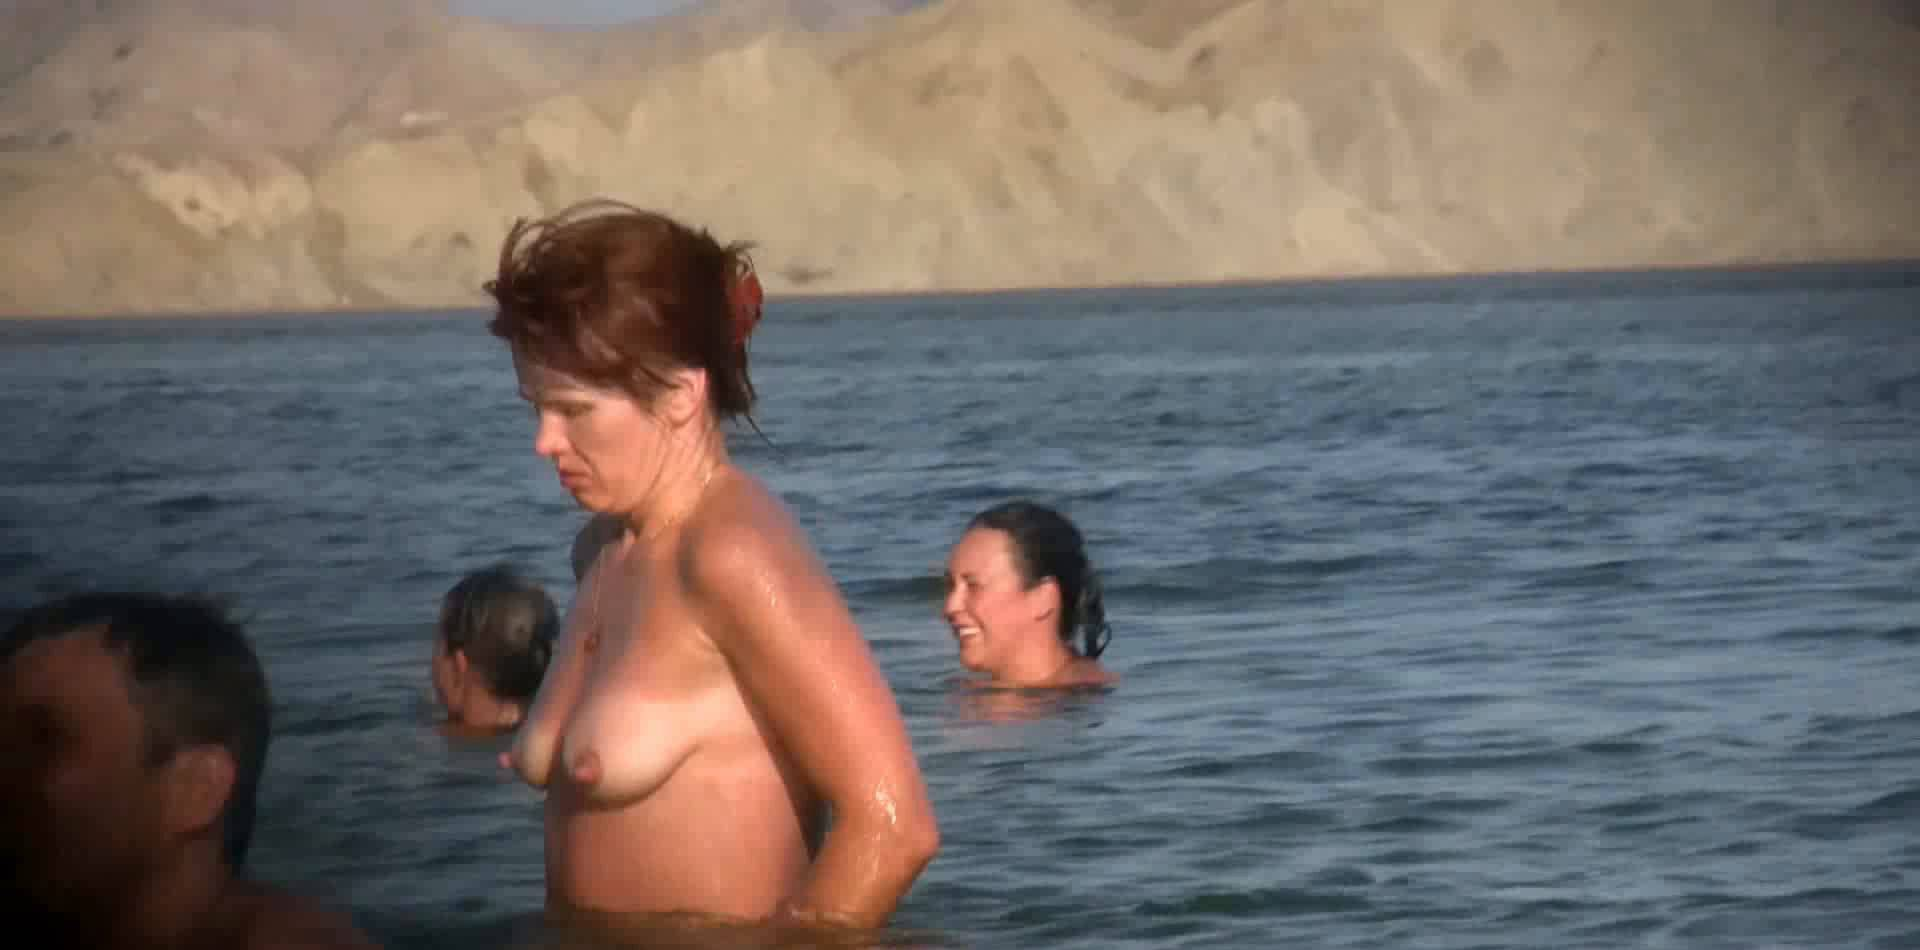 Candid Family Nudism 3 - 1